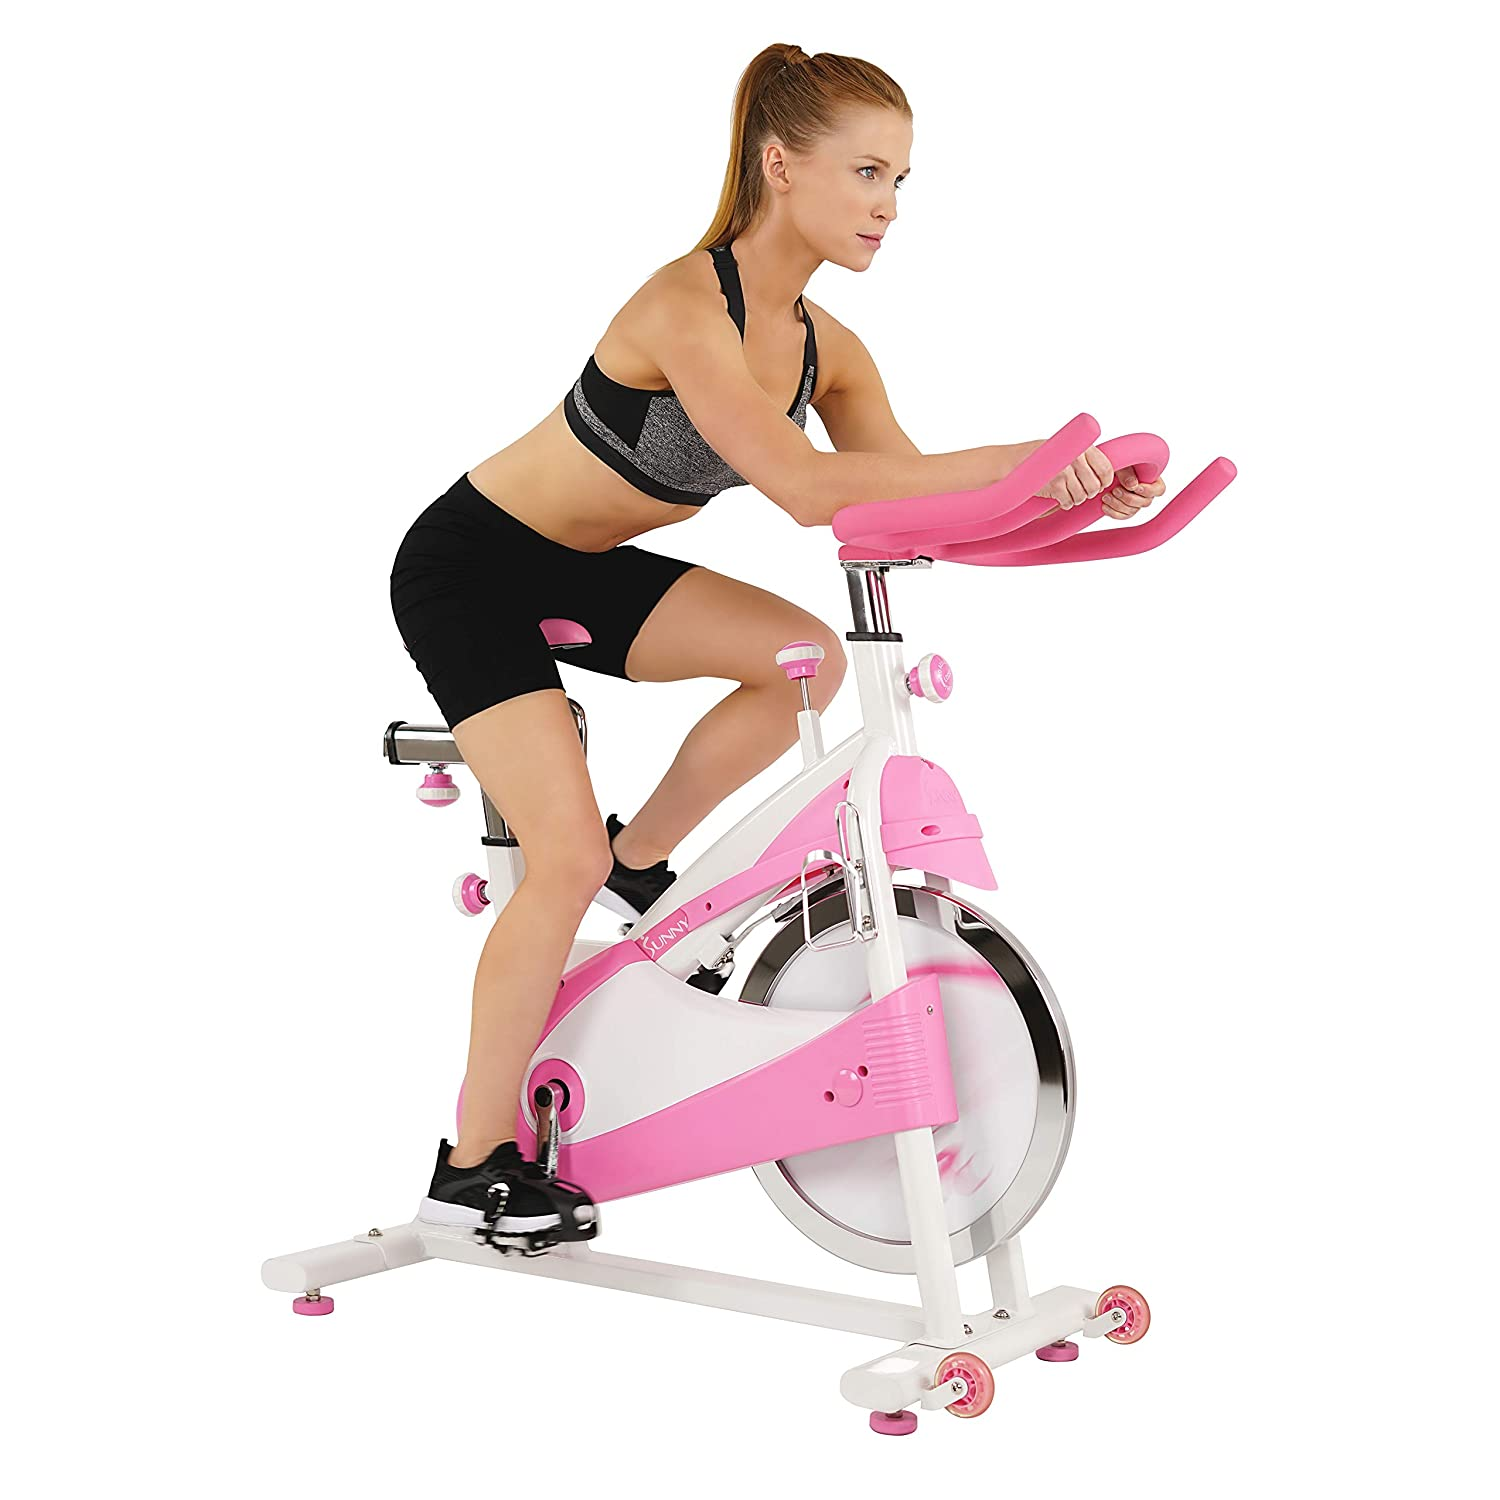 Sunny Health Fitness P8150 Belt Drive Premium Indoor Cycling Bike, Pink